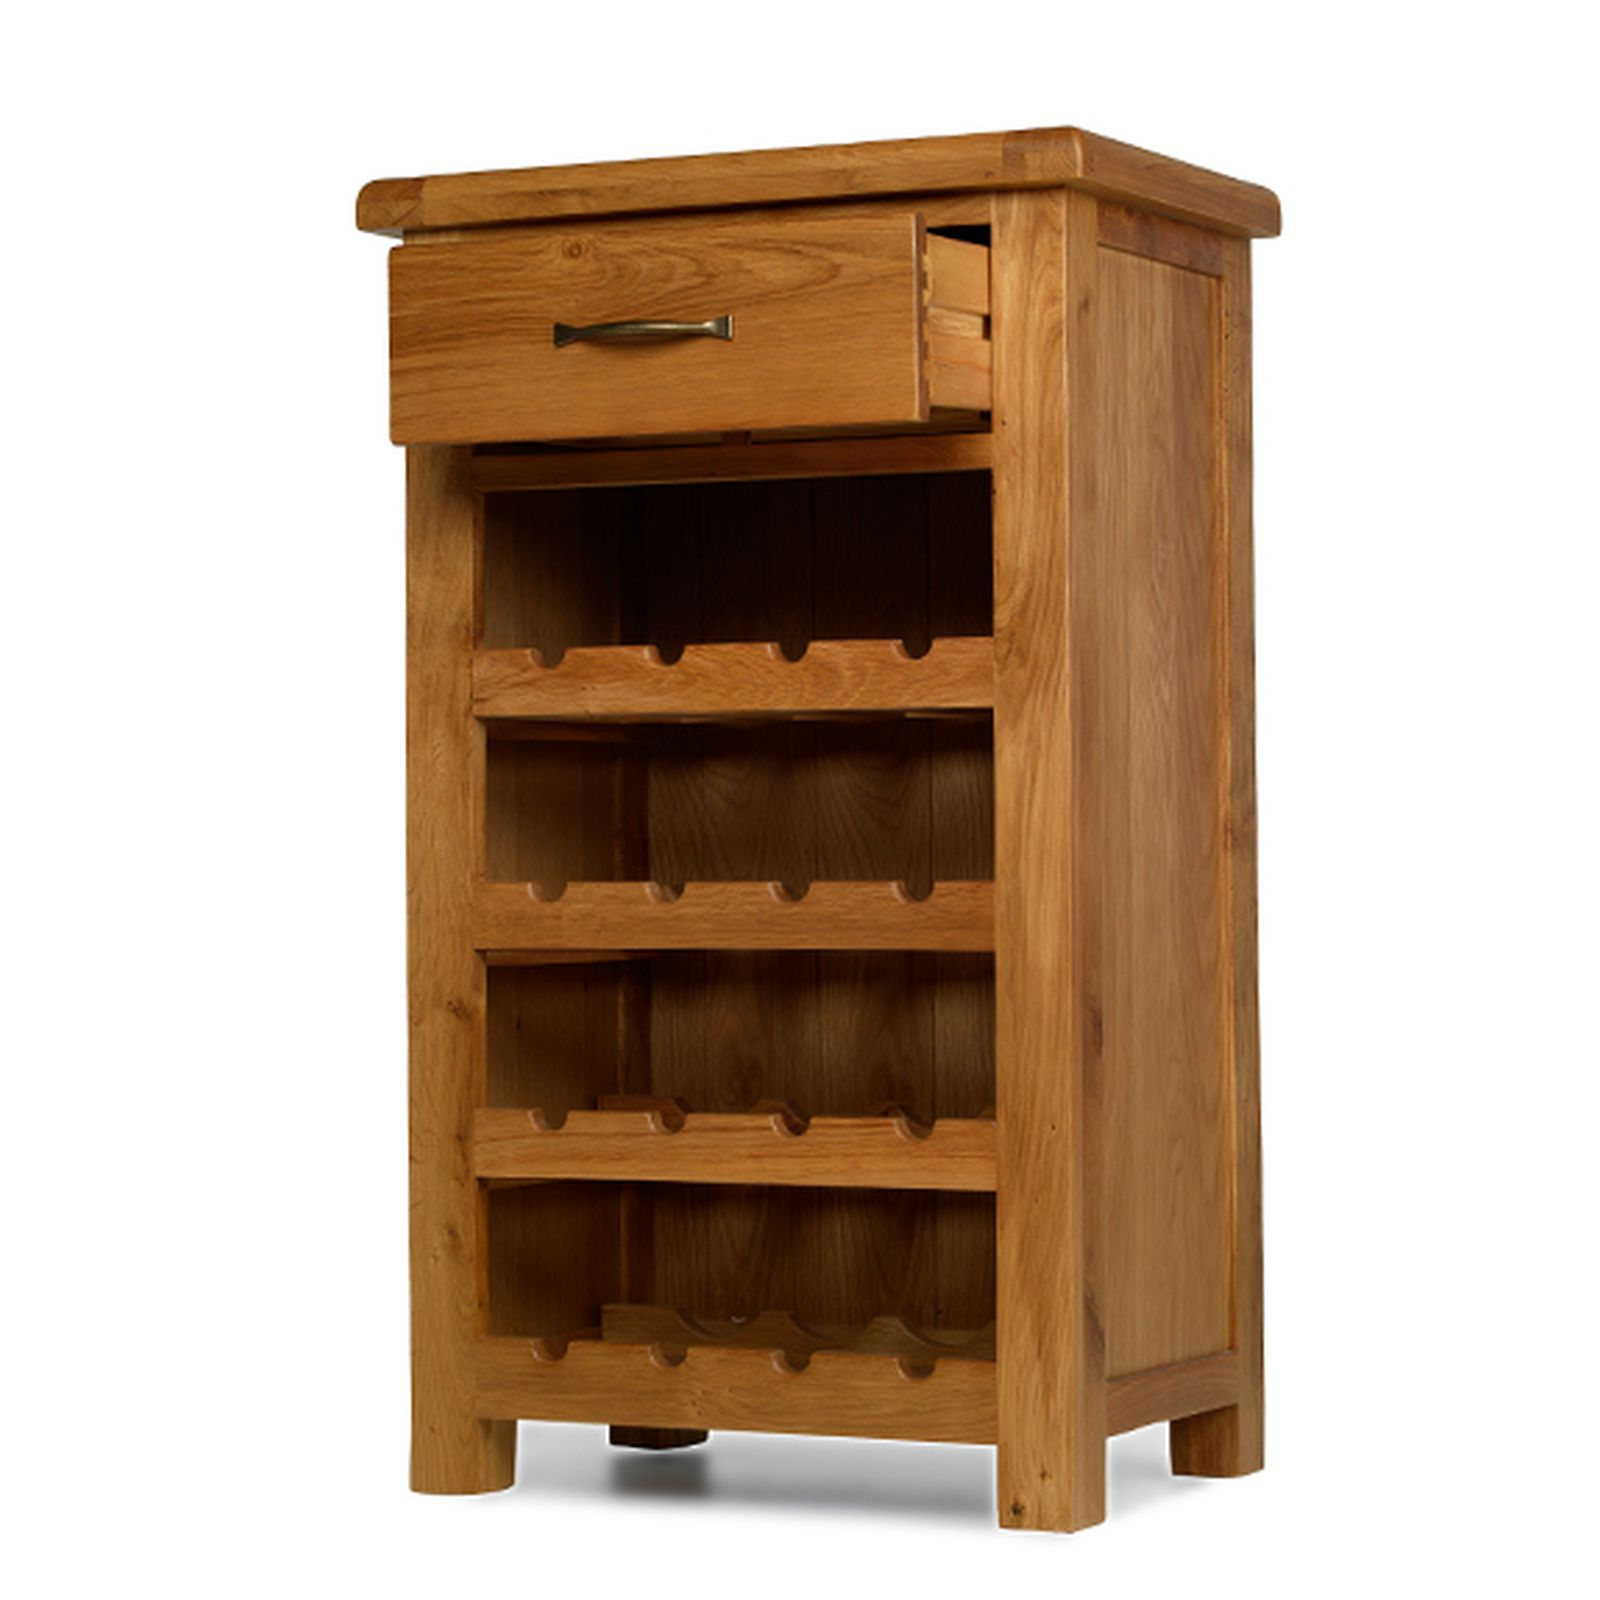 Rushden solid oak furniture small wine bottle cabinet rack for Solid oak furniture